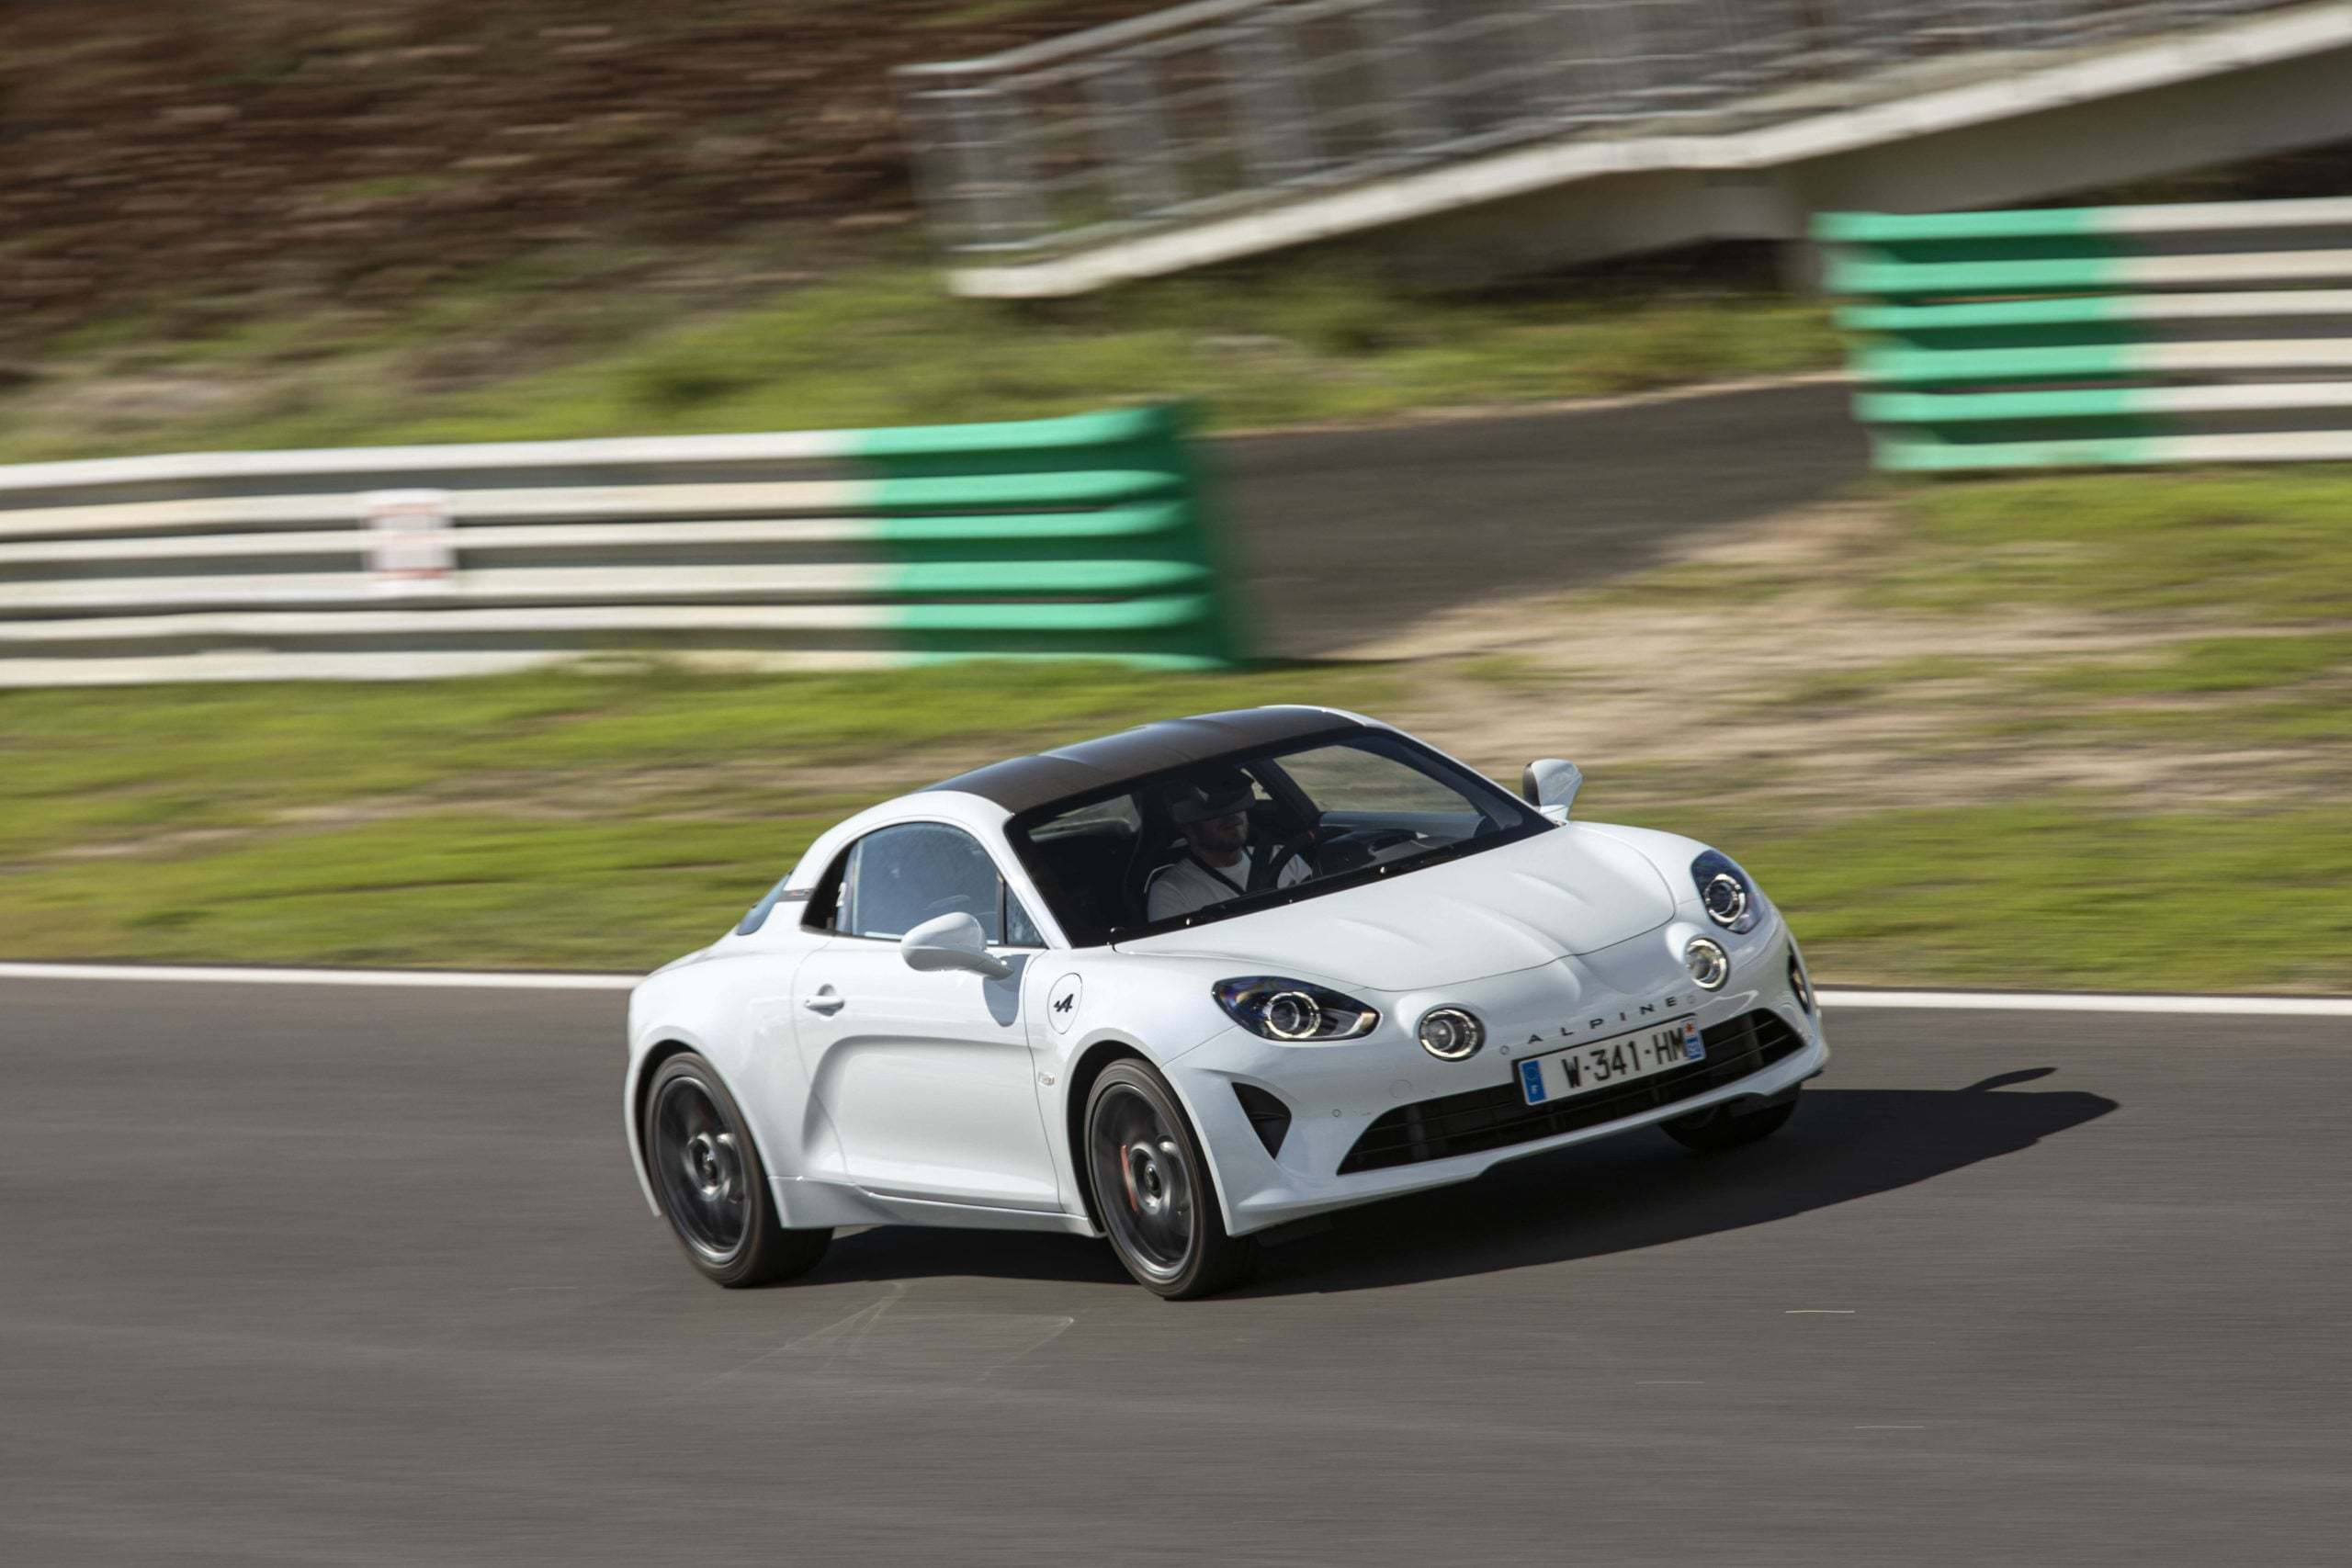 essai alpine a110s estoril 6 scaled | Essai Alpine A110S : le point sur les S